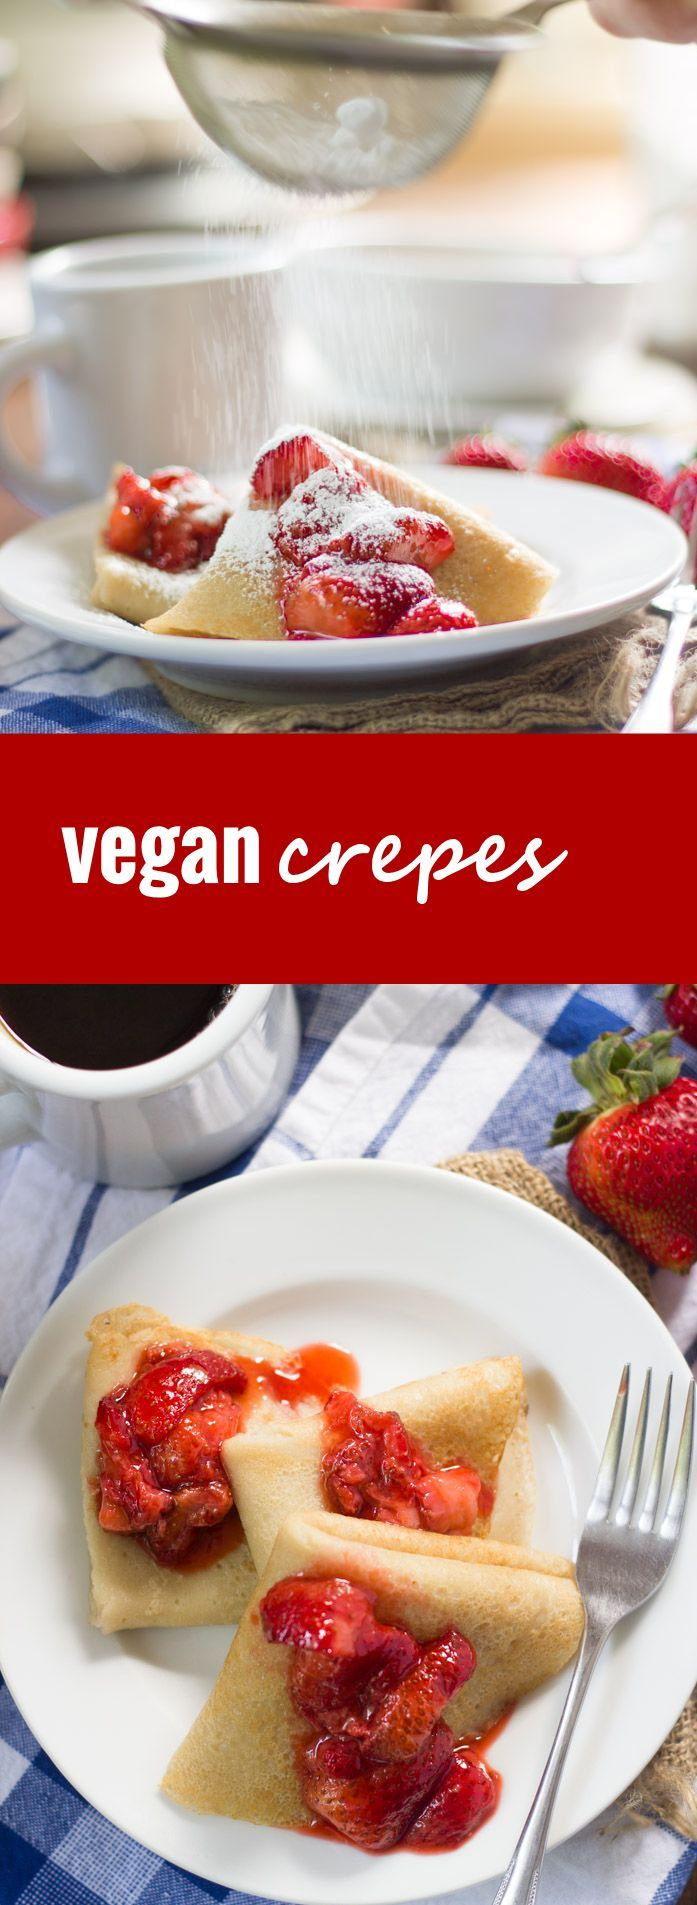 These vegan crepes are super easy to make, and can be eaten as part of a sweet breakfast or stuffed with savory fillings for an elegant dinner.